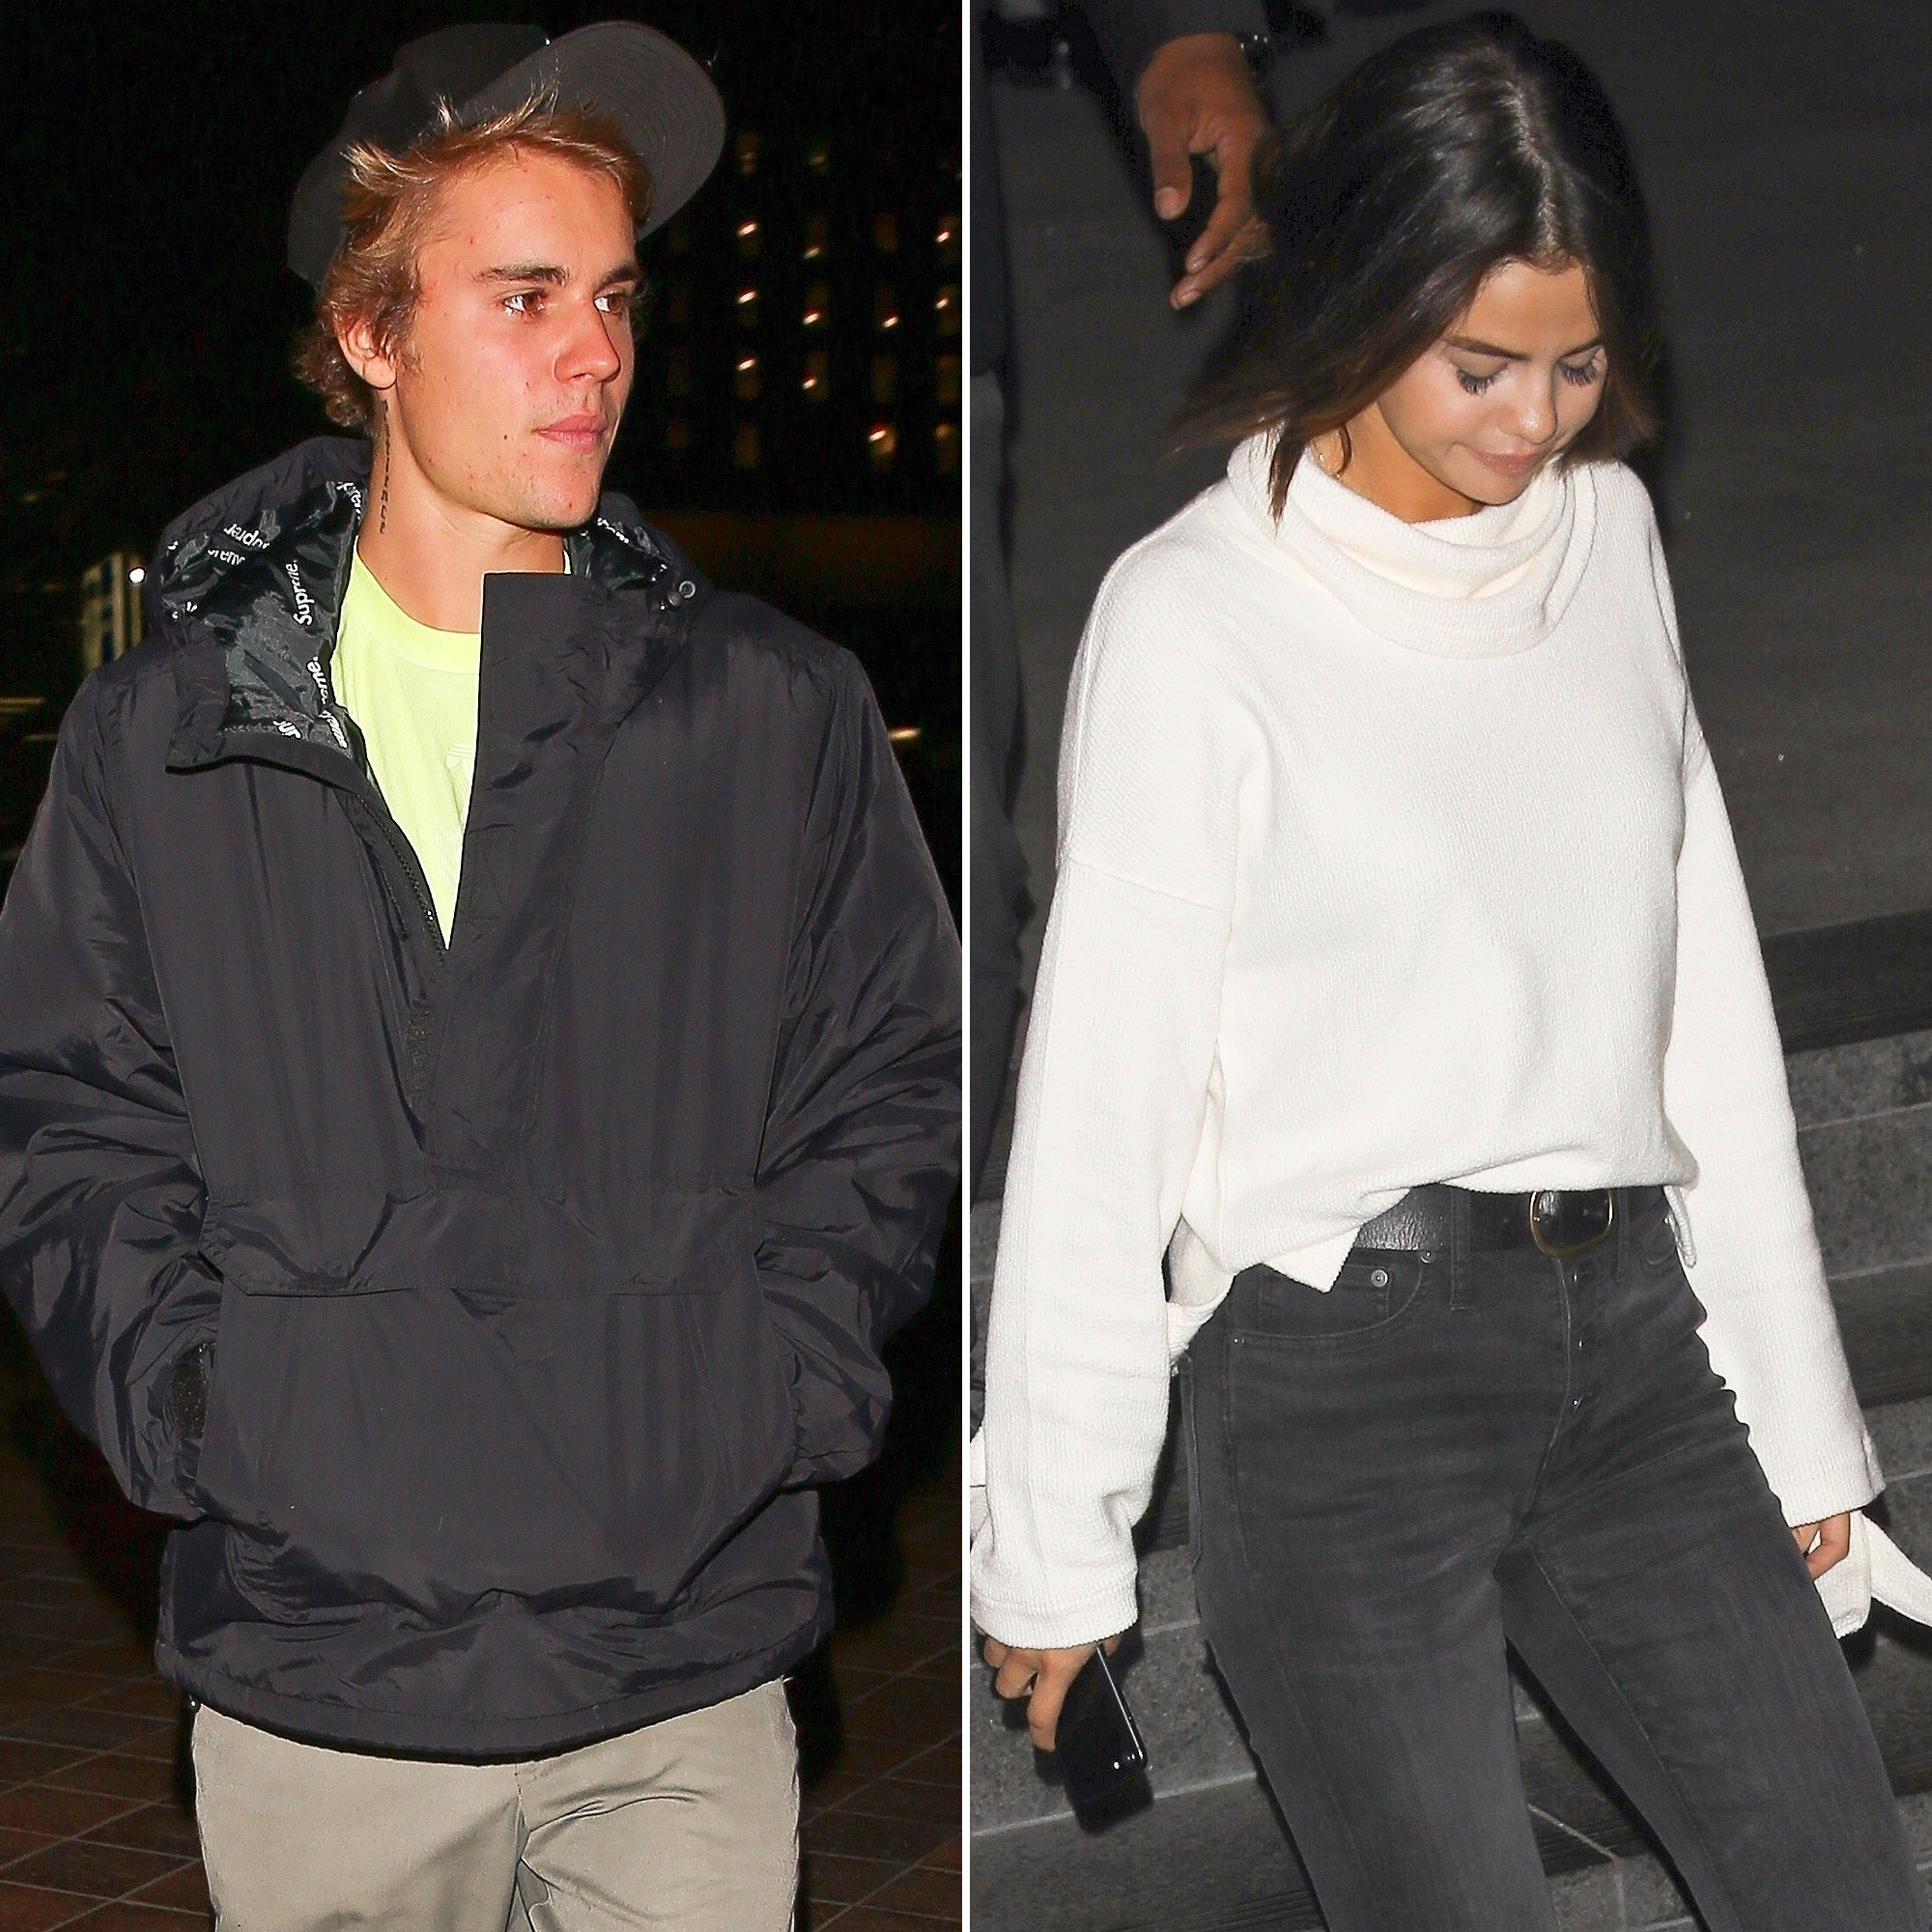 Justin Bieber Dating Model Just to Make Selena Gomez Jealous